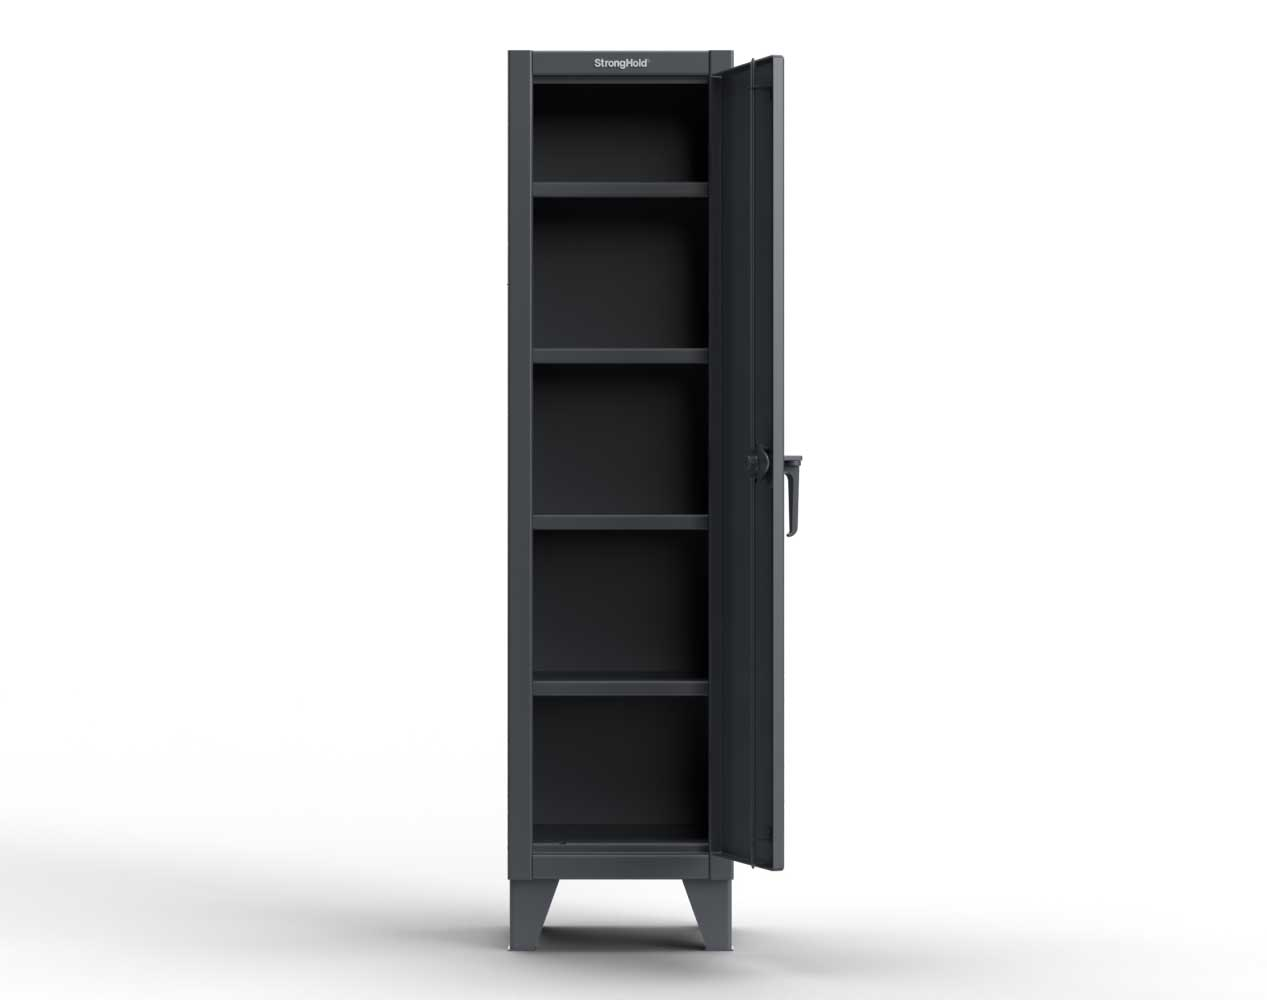 Extra Heavy Duty 12 GA Single-Tier Locker with 1 Compartment, 4 Shelves, 18 in. W x 18in. D x 72 in. H